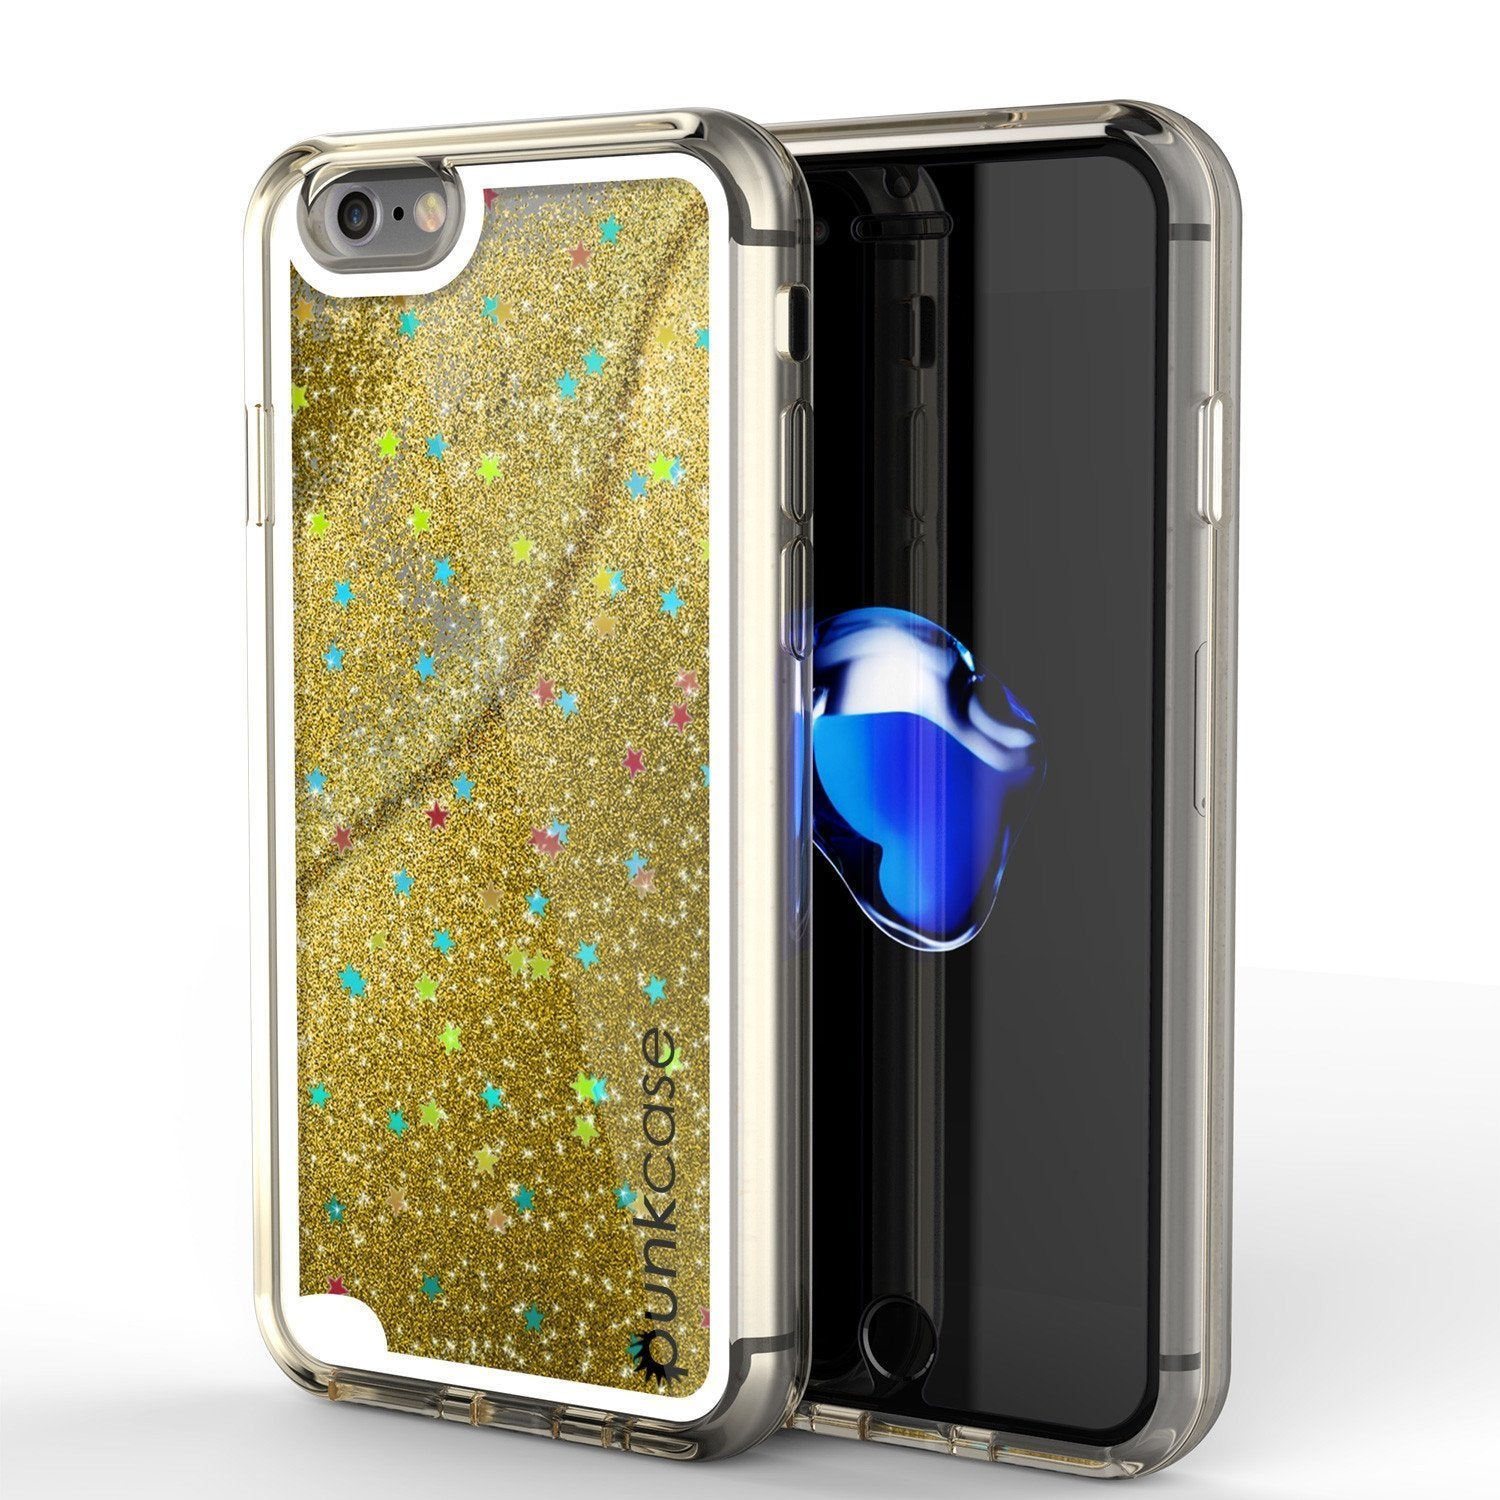 "iPhone SE (4.7"") Case, PunkCase LIQUID Gold Series, Protective Dual Layer Floating Glitter Cover"